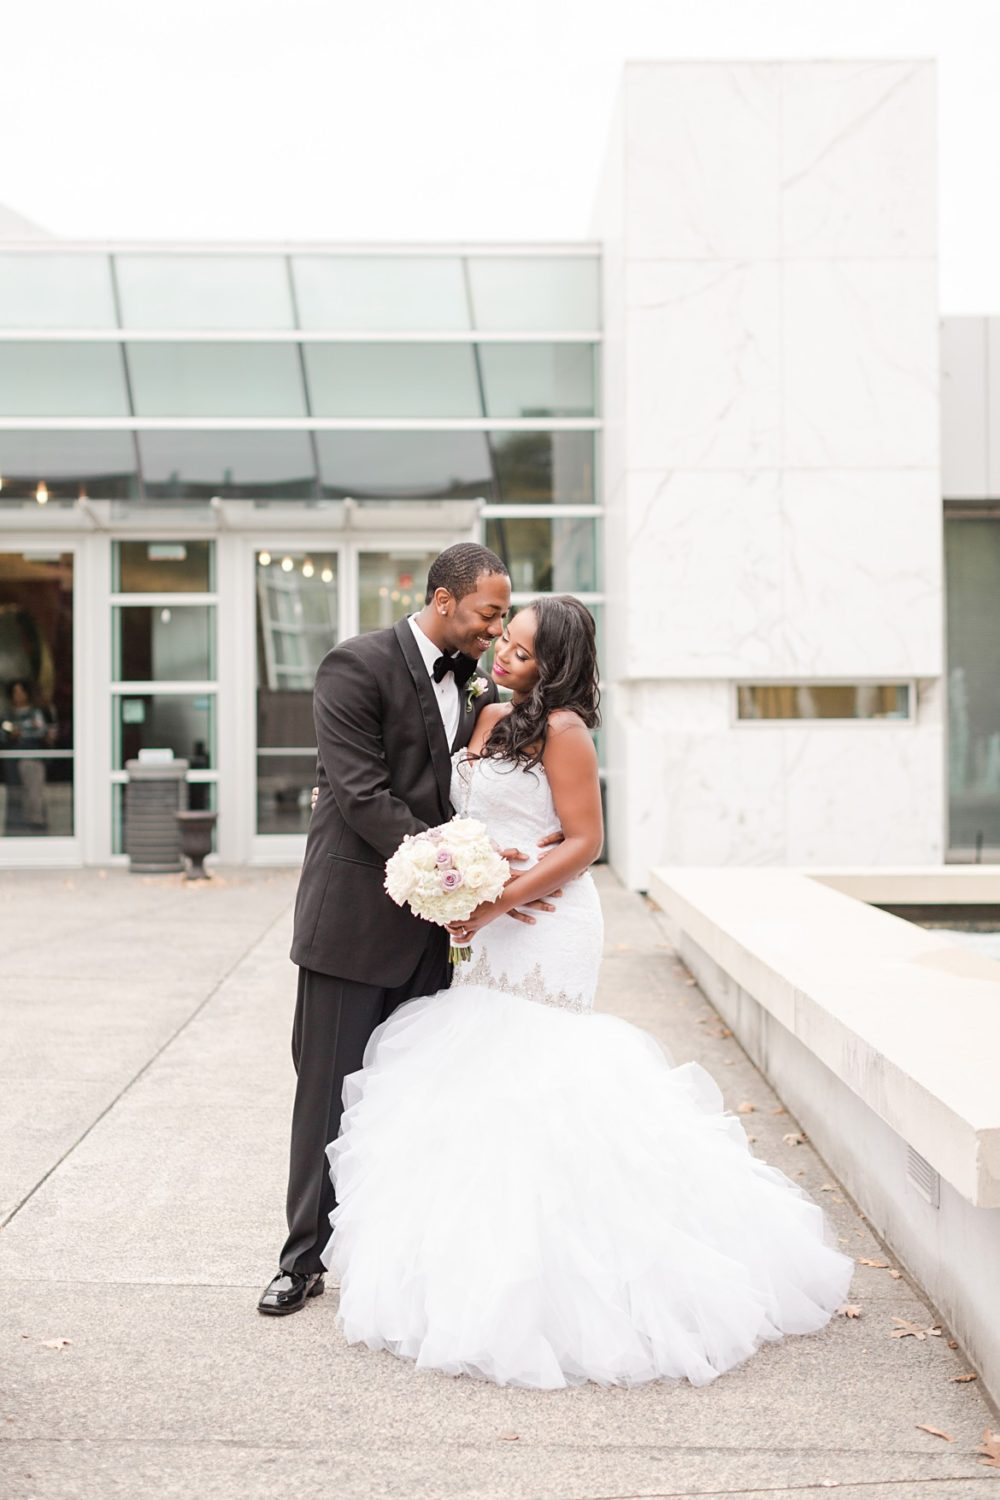 opera-memphis-wedding-2